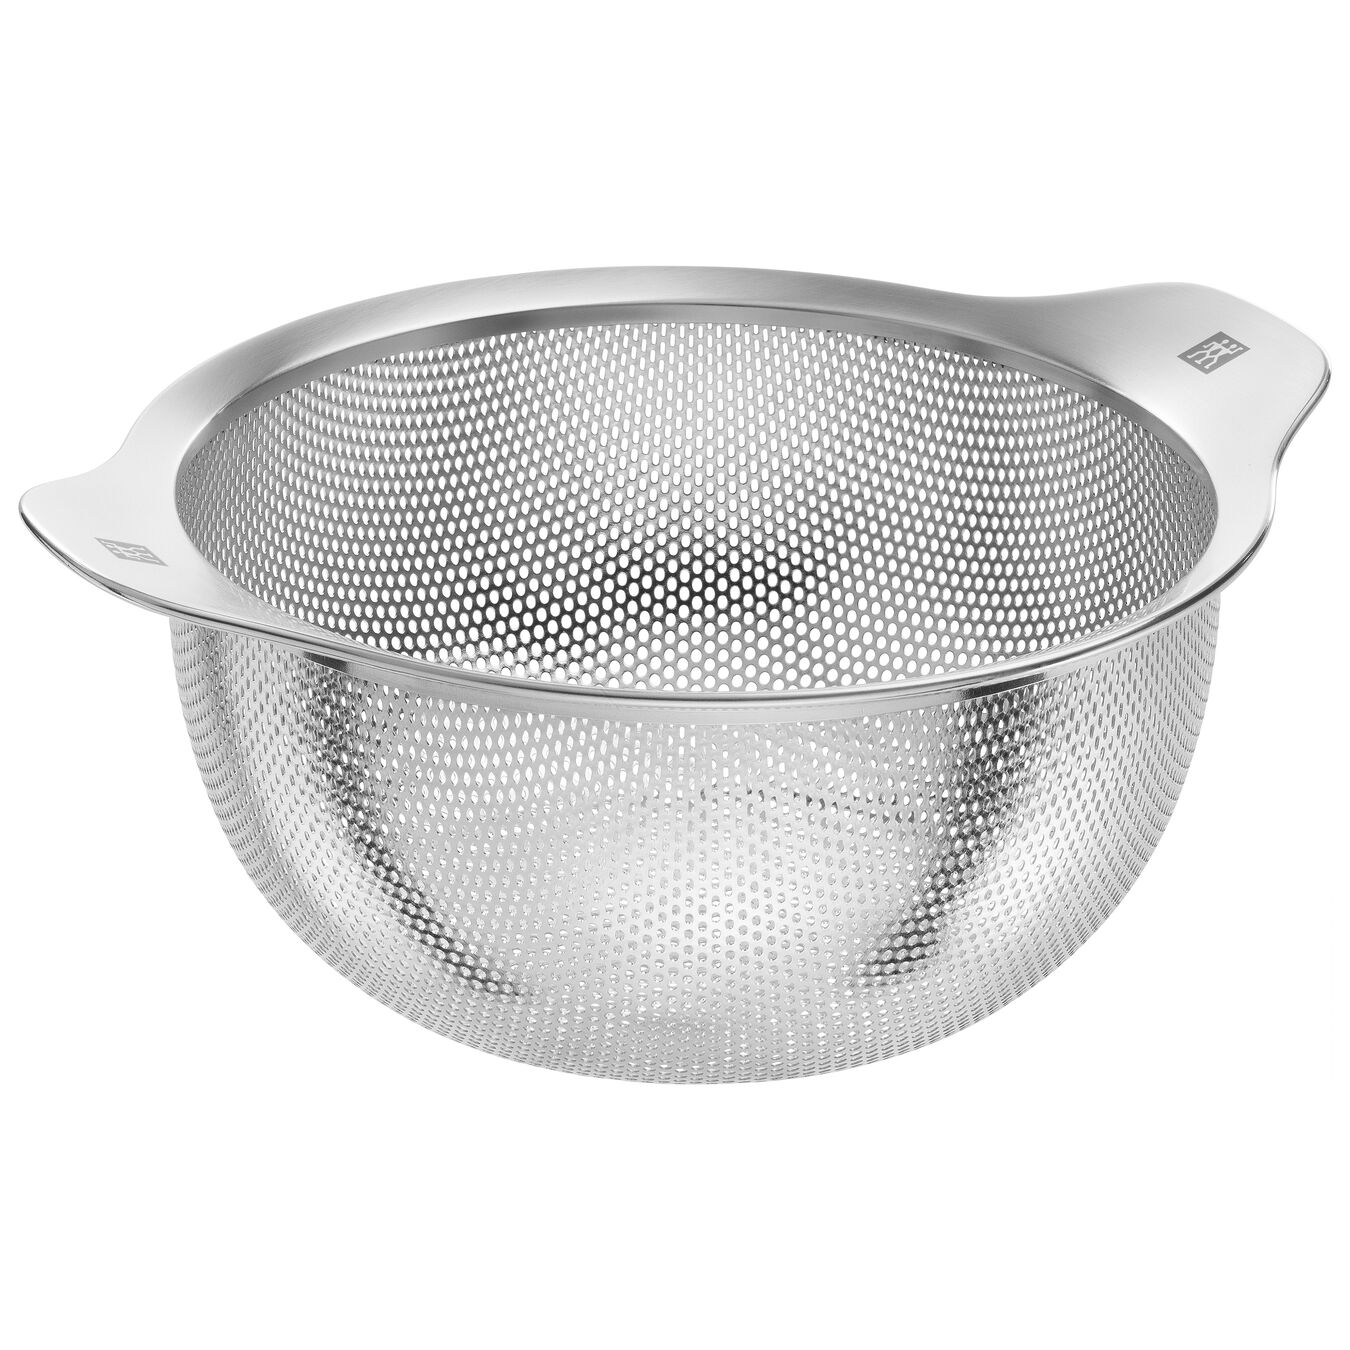 7.5-inch Colander, 18/10 Stainless Steel ,,large 1